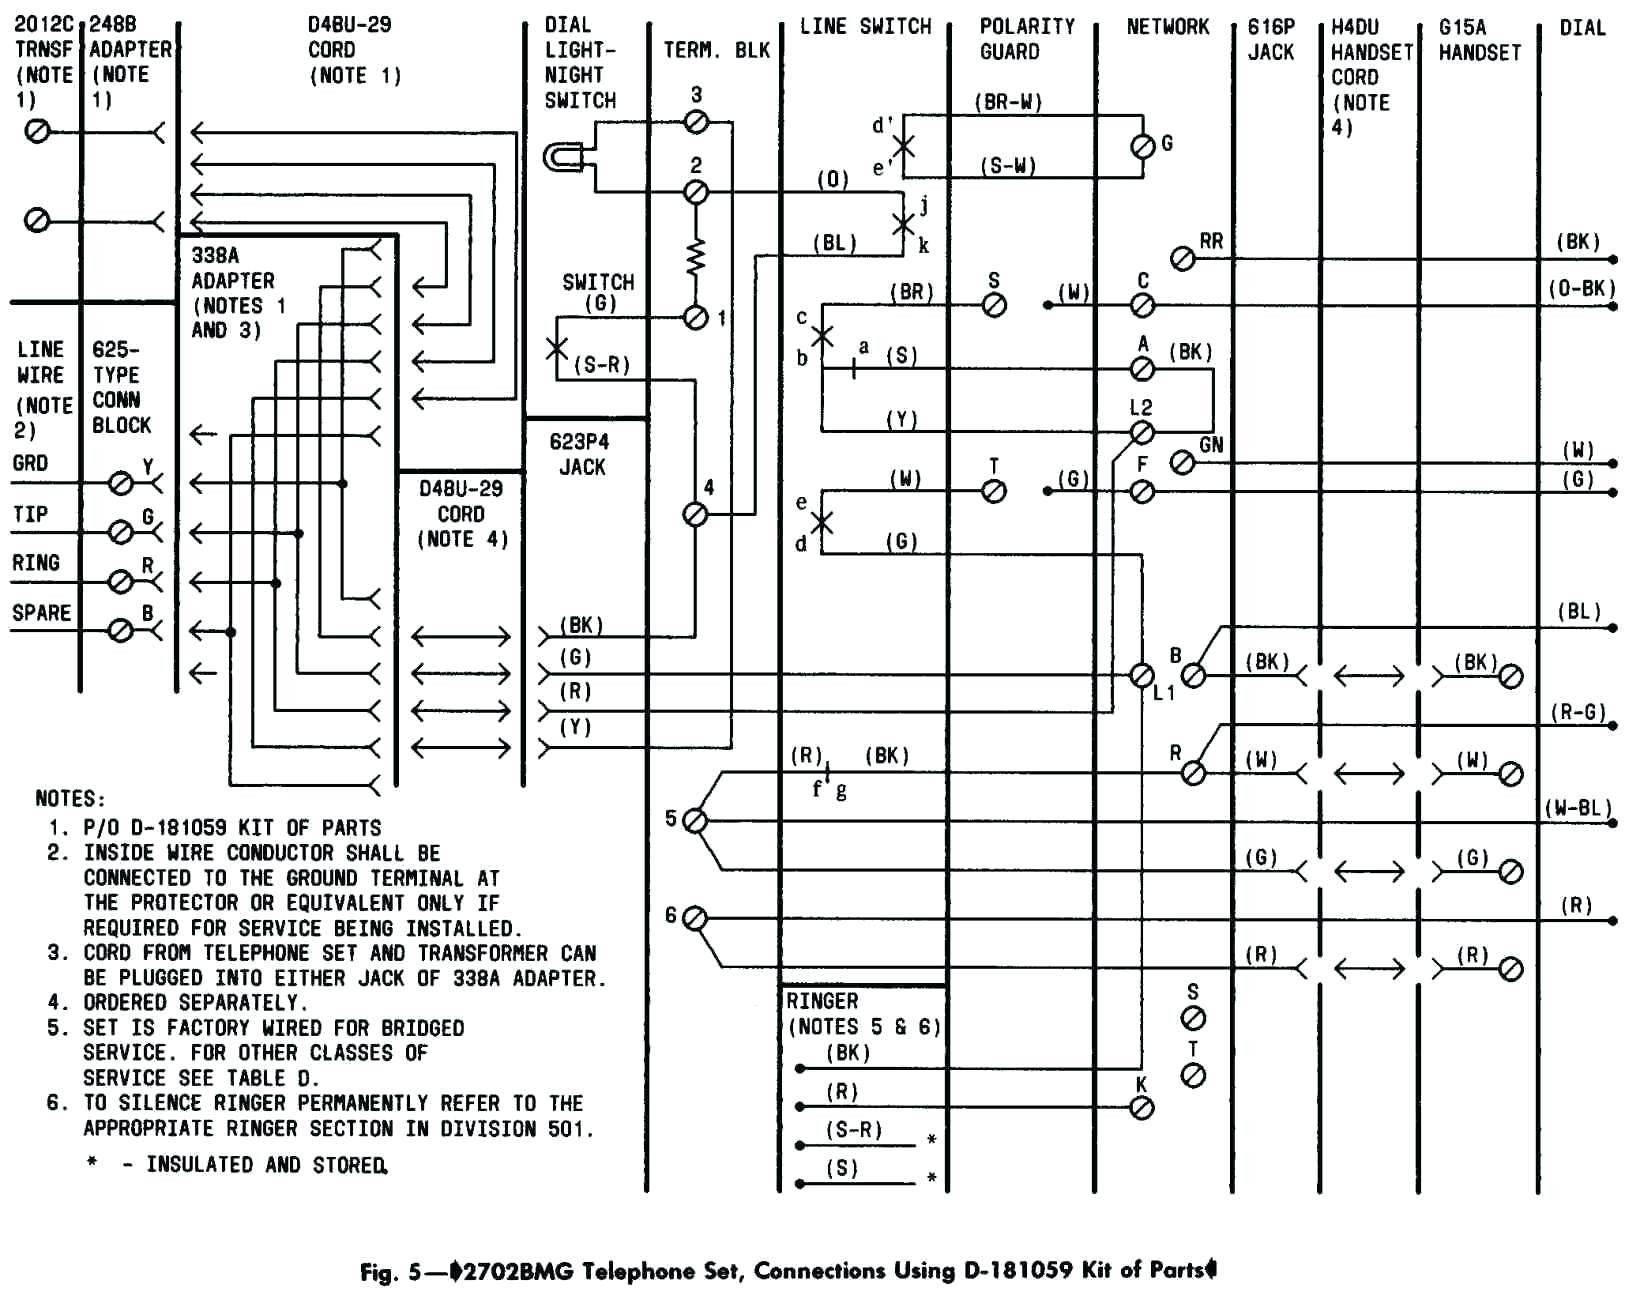 Fuse Box Diagram 05 Mazda 6 Wiring Library 1992 Protege 2003 And